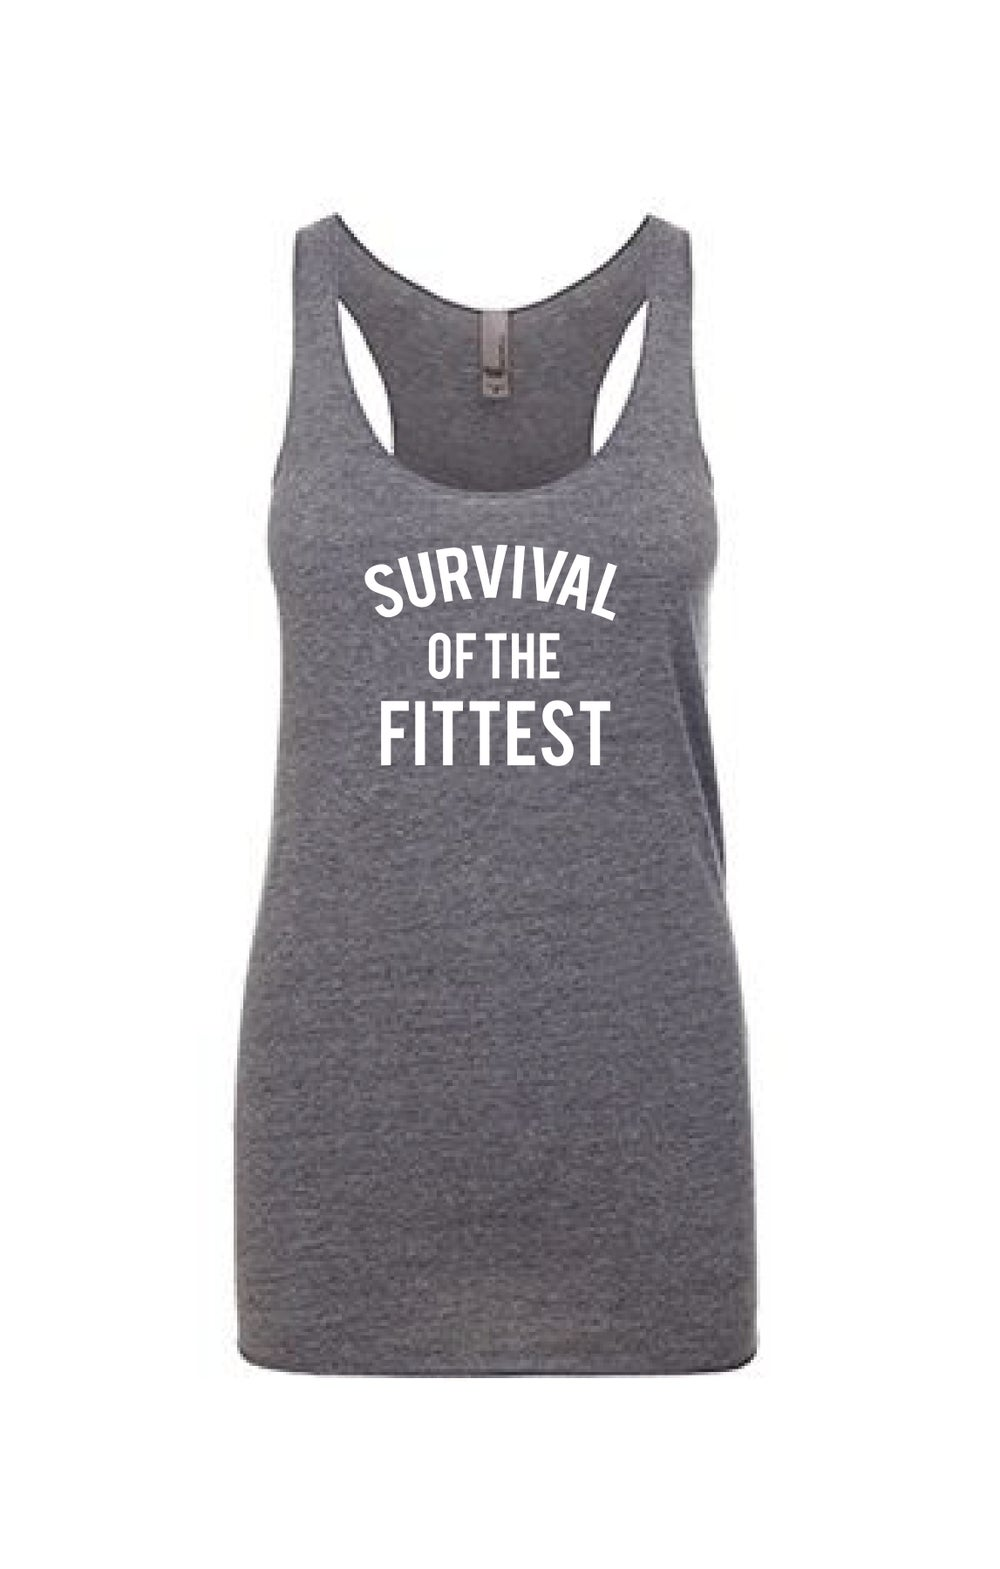 Image of Survival of the Fittest - Women's Tank